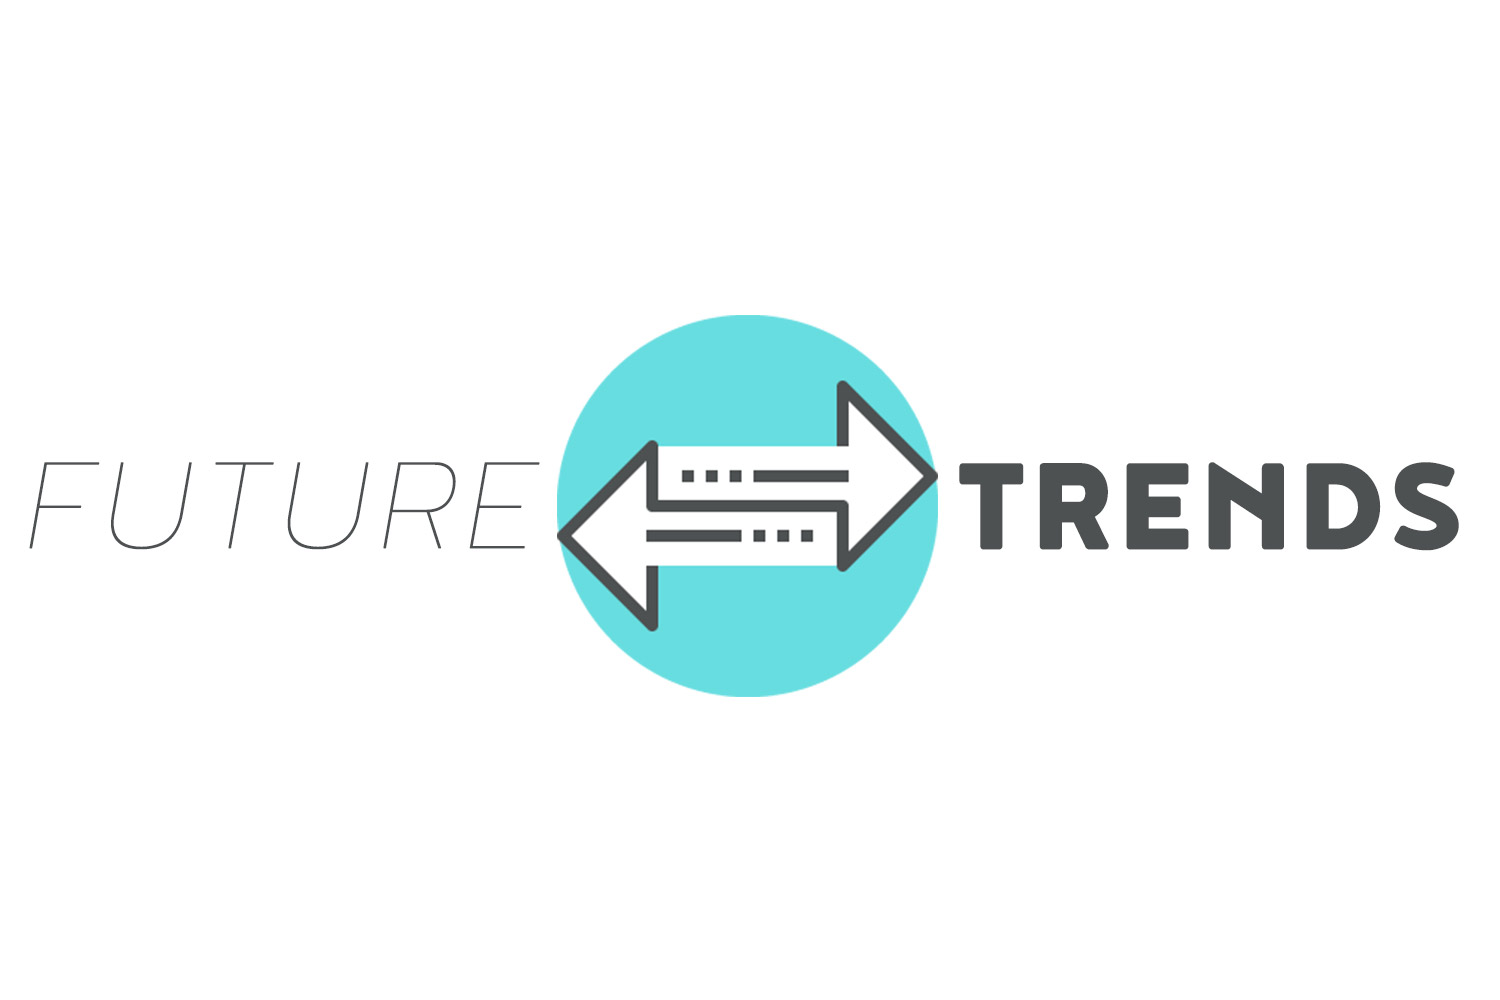 Future trends 2016 and beyond, what's in store?